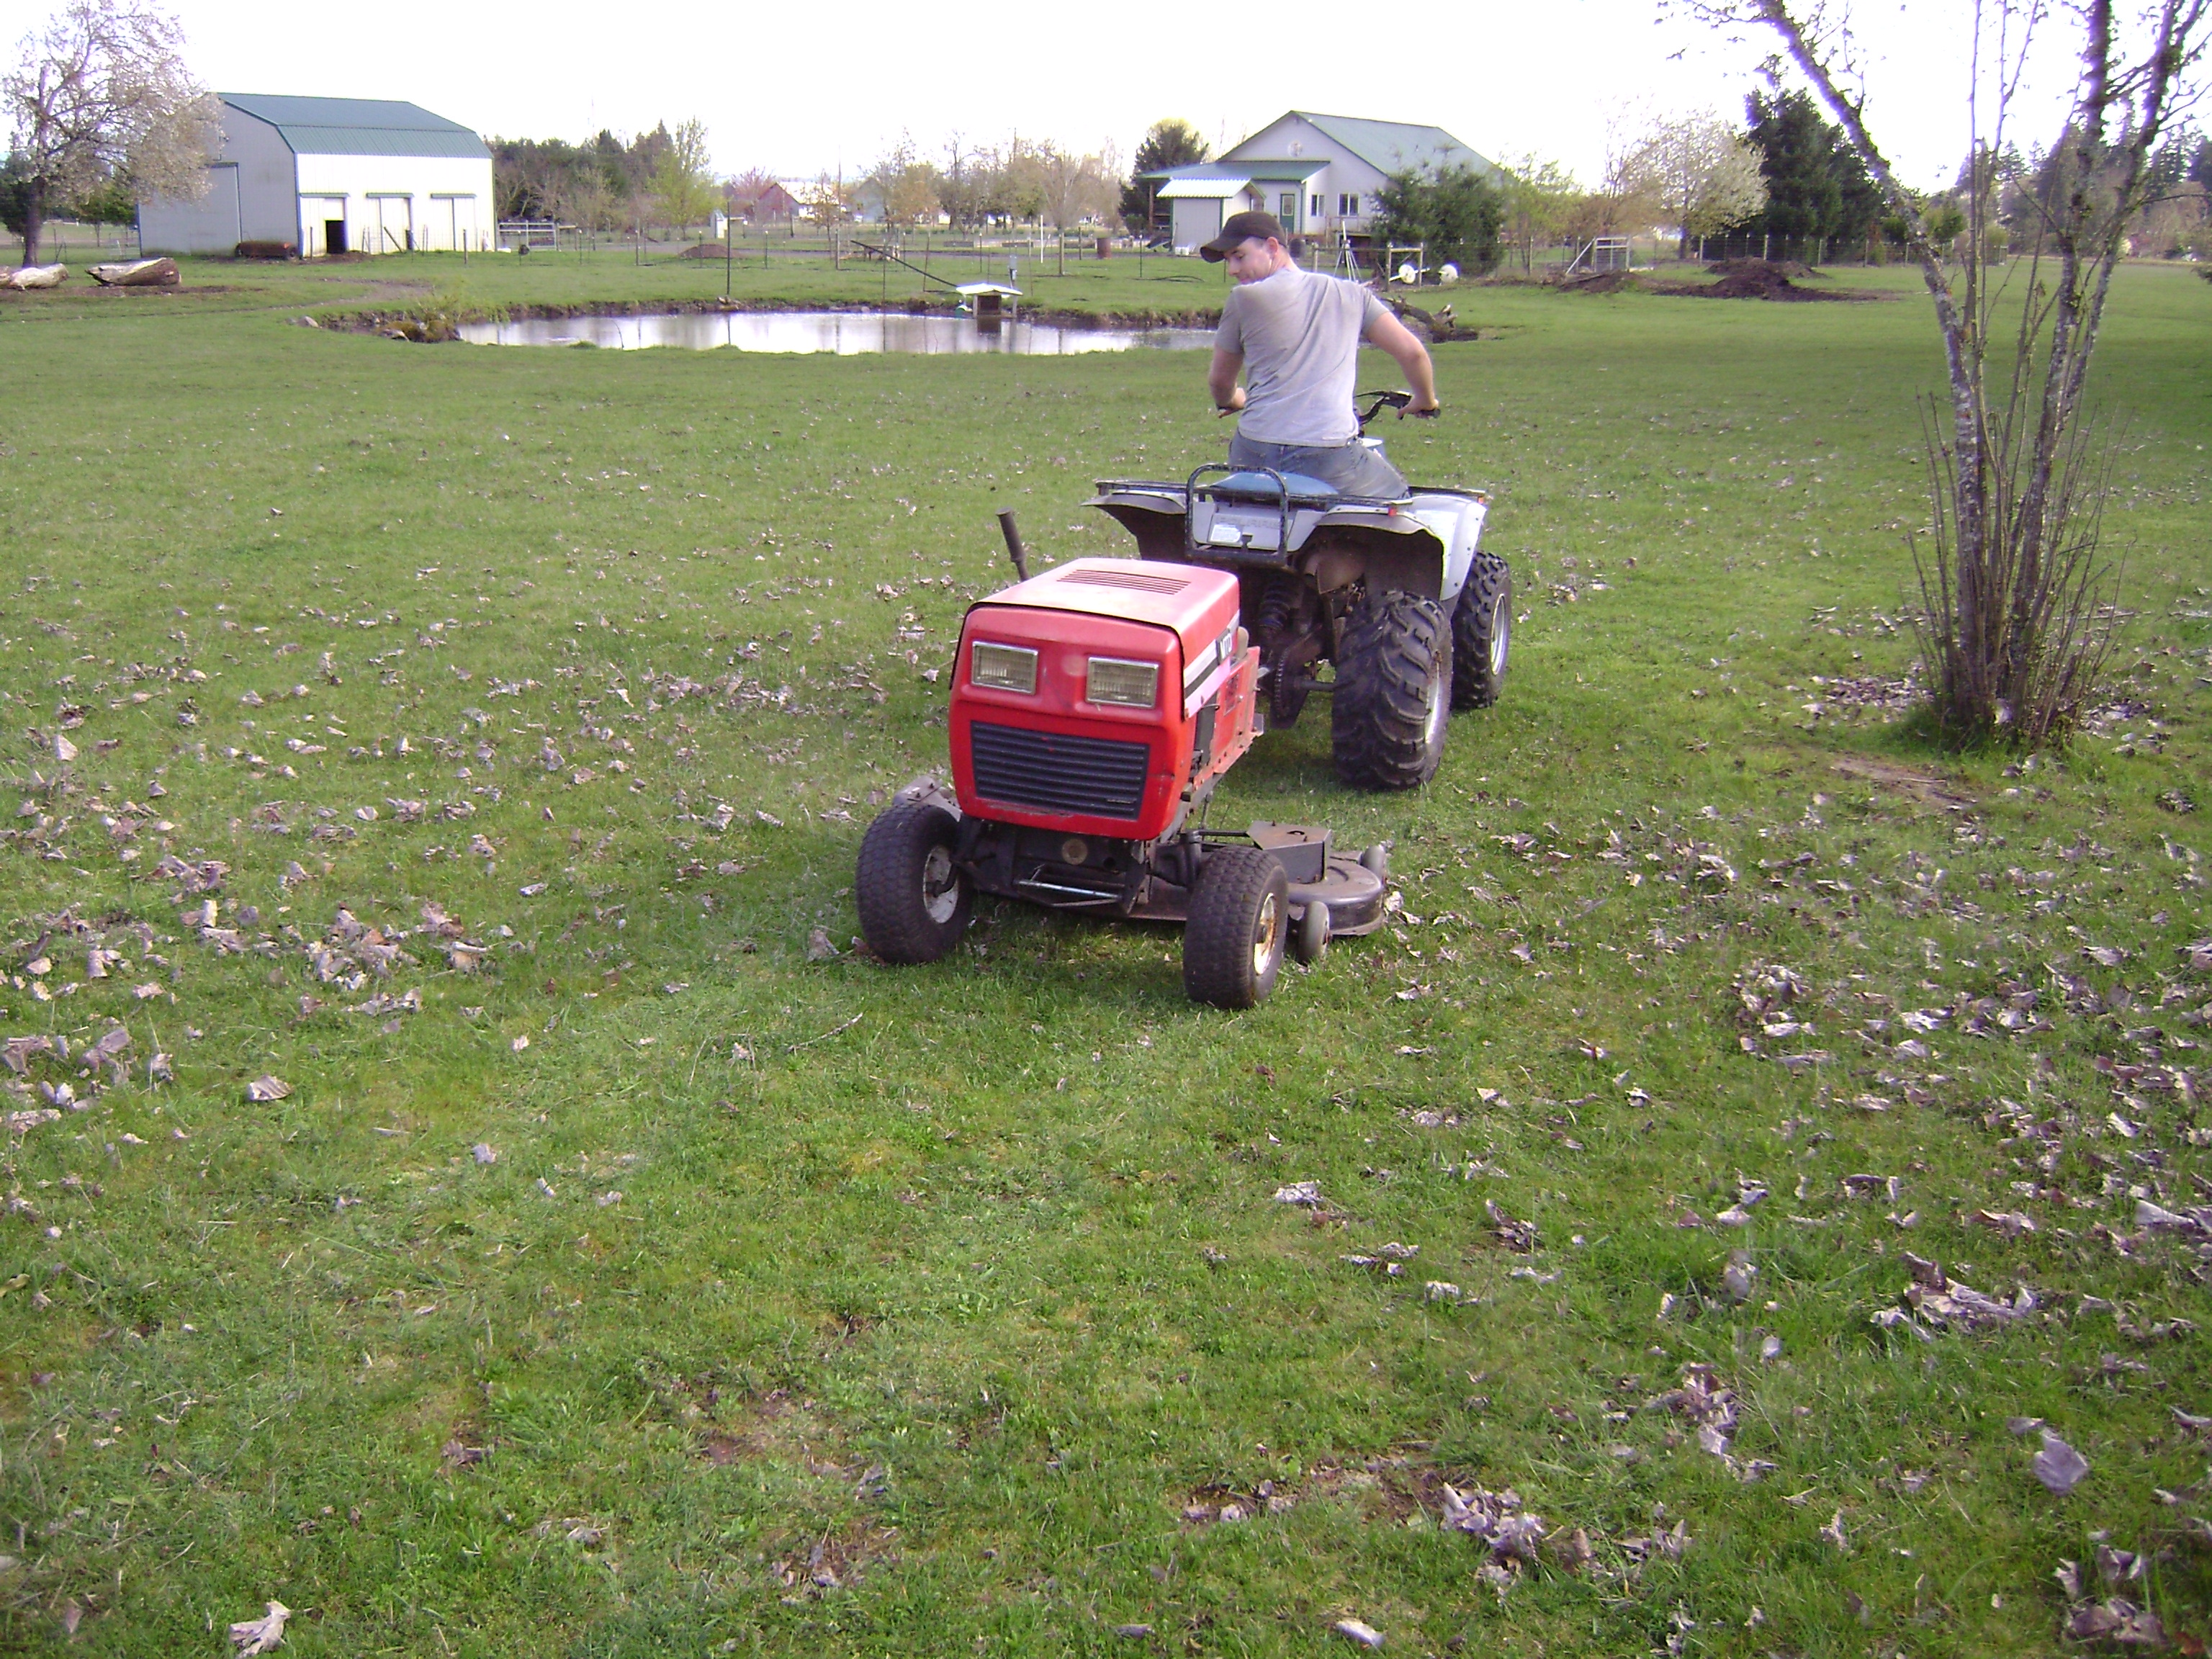 Elegant Lawn Mower Decks for Sale